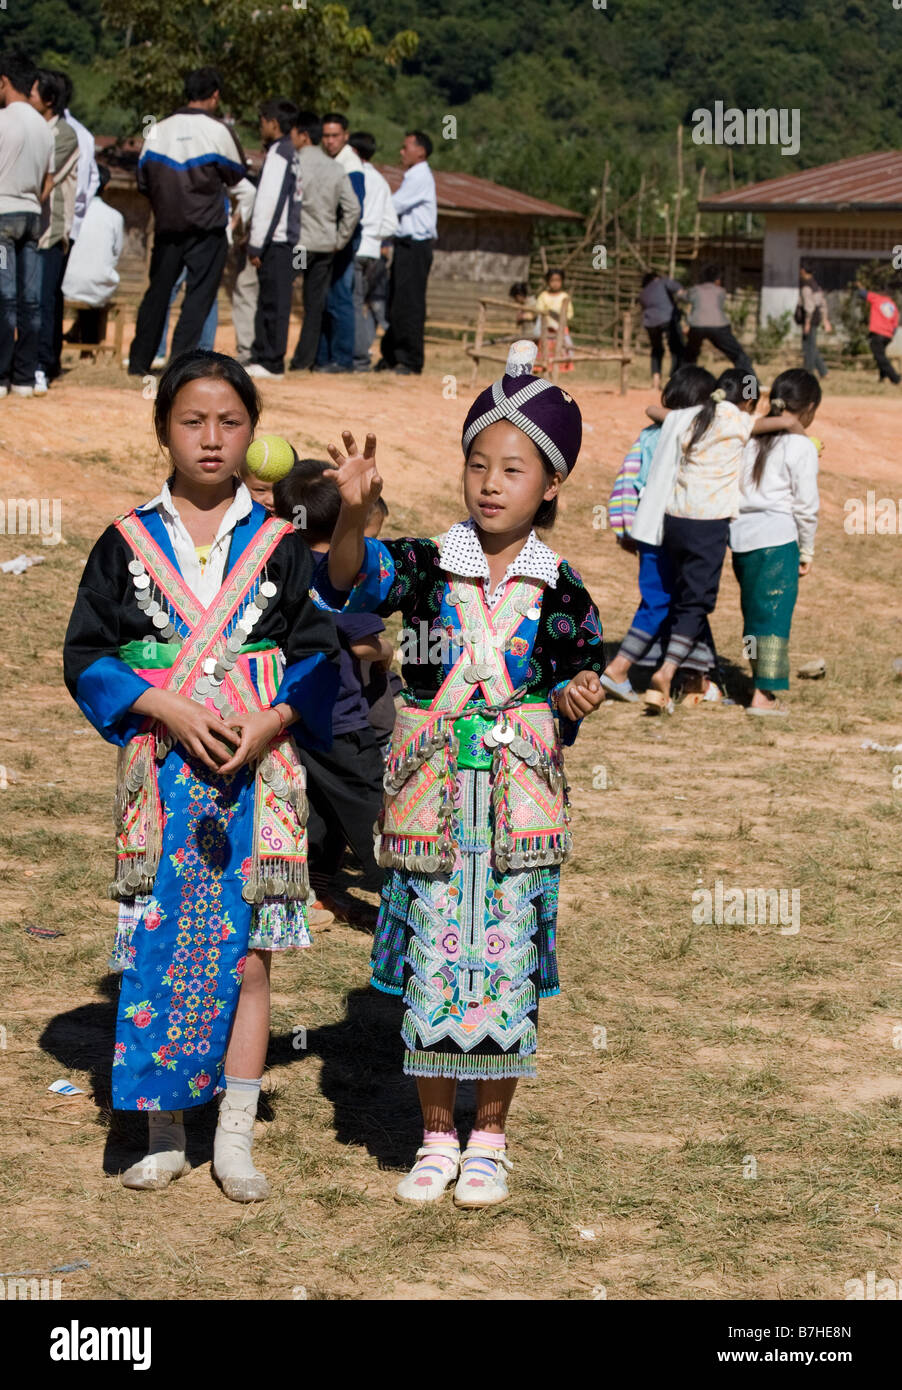 Two young Hmong girls in traditional costume at a Hmong New Year